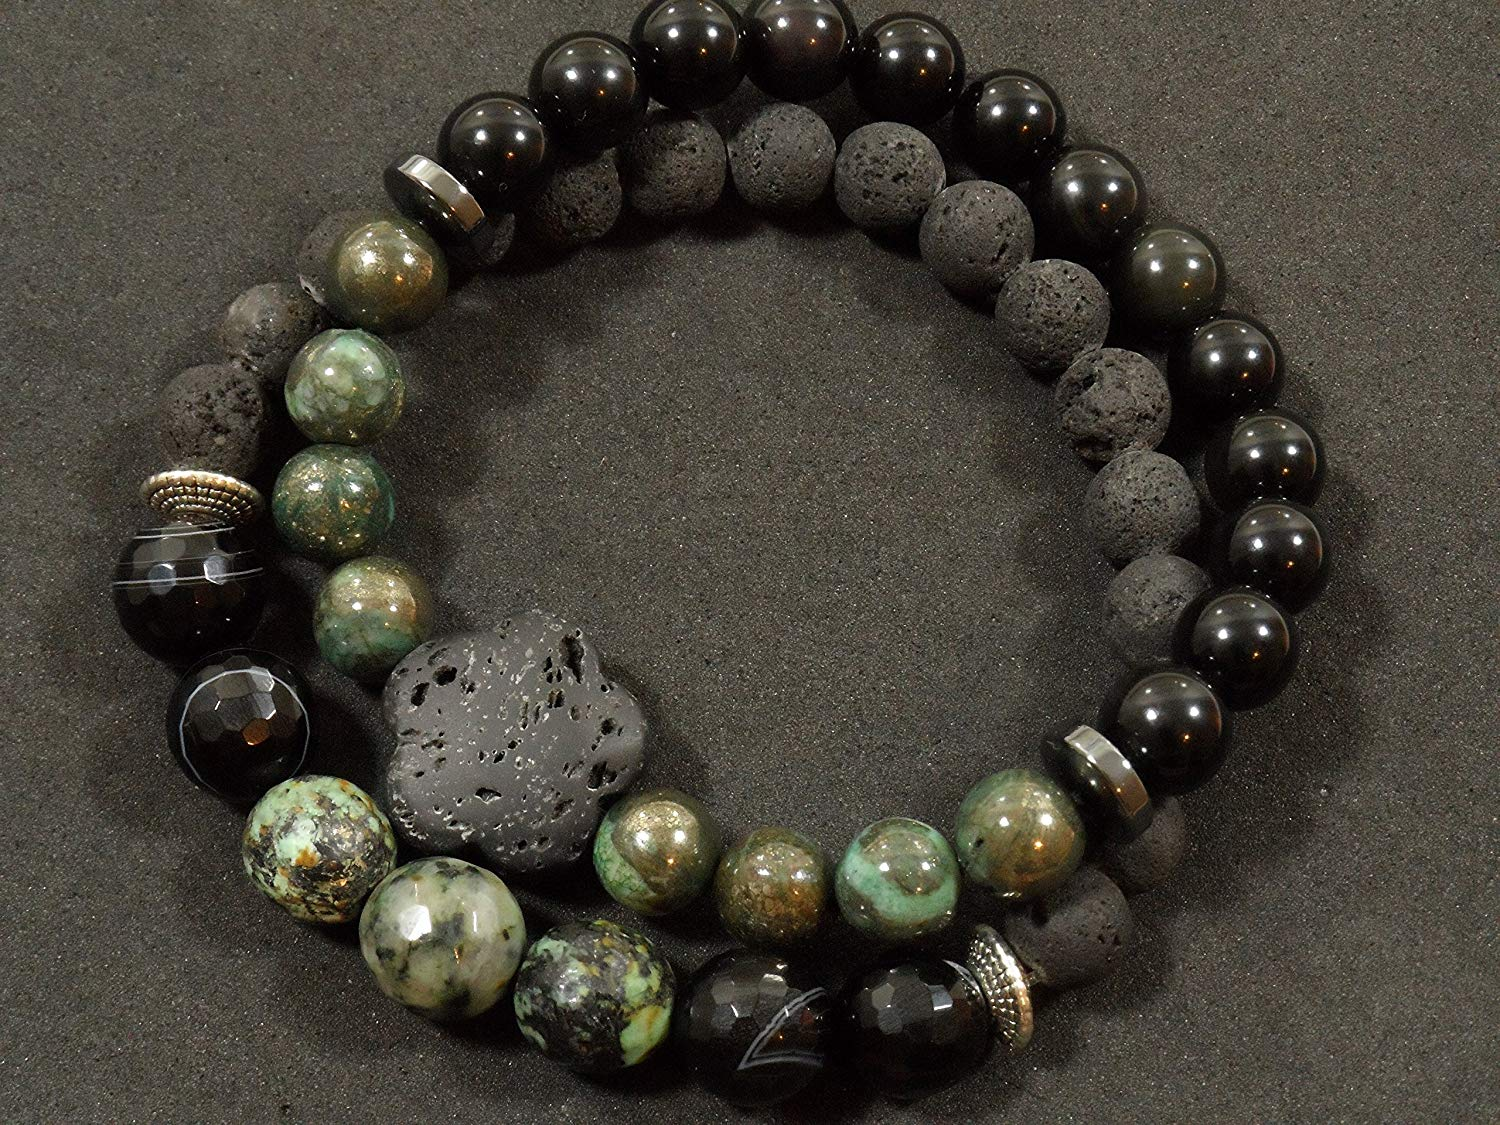 2 Bracelet Stacked Set: 10mm Faceted Moss Agate, 10mm Faceted Onyx, 8mm Lava with Silver Toned Accents; Large Lava focus stone, 8mm Pyrite, 8mm Onyx, with Hematite Accents.